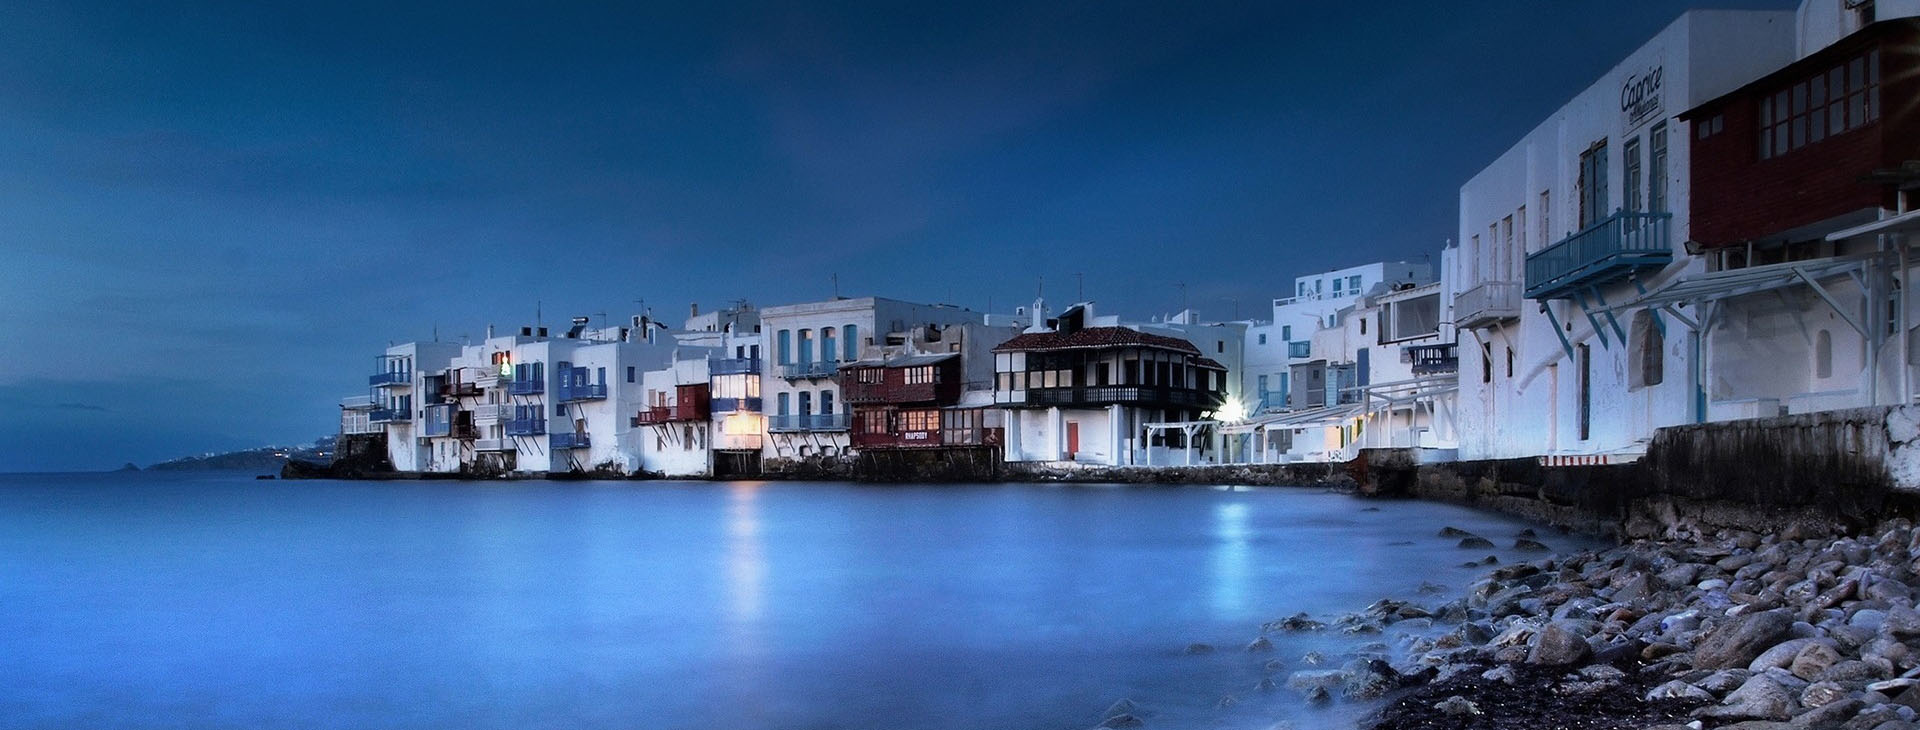 """Little Venice"" by night at Mykonos island"